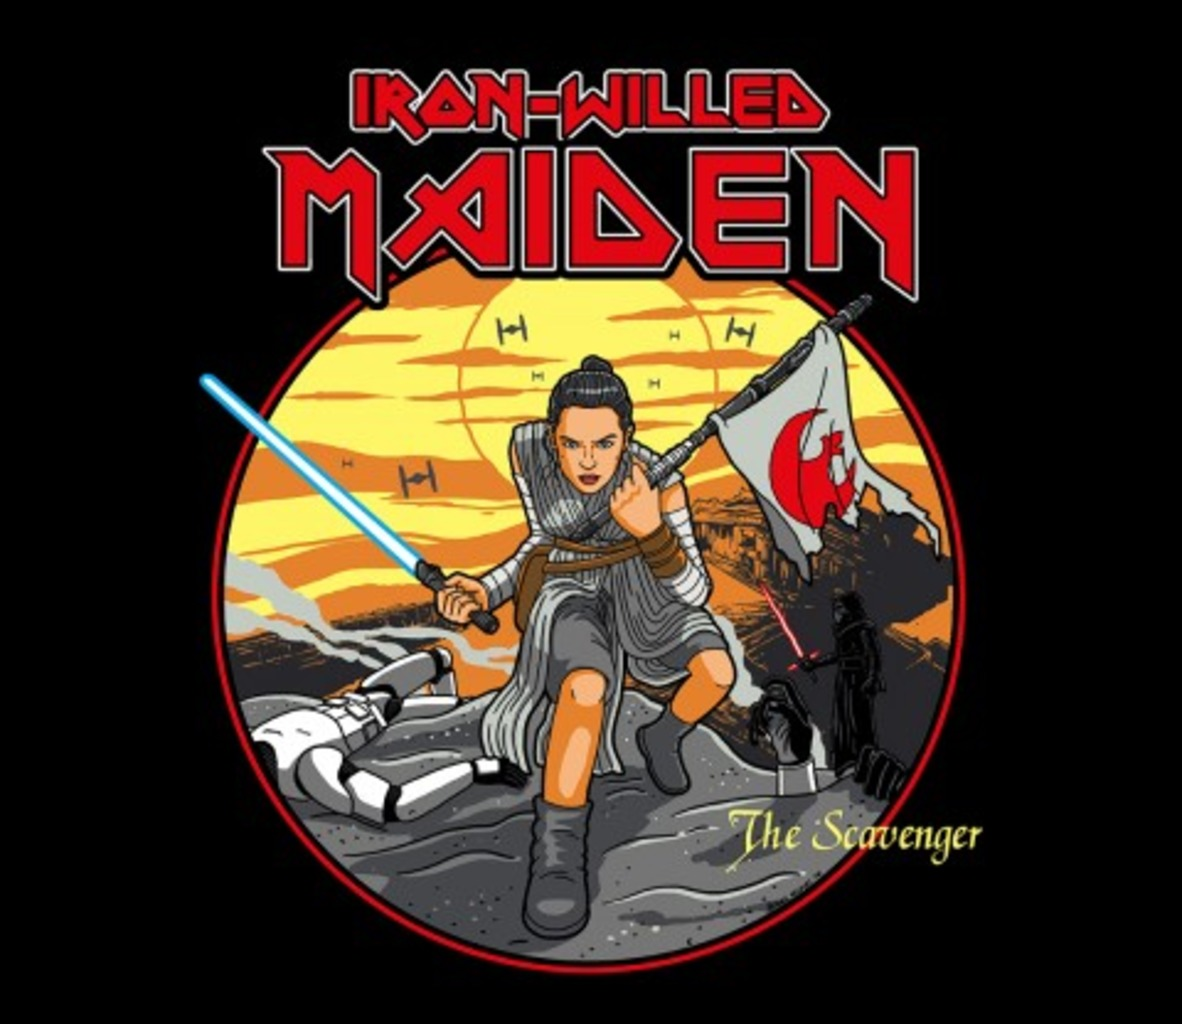 TeeFury: Iron-willed Maiden